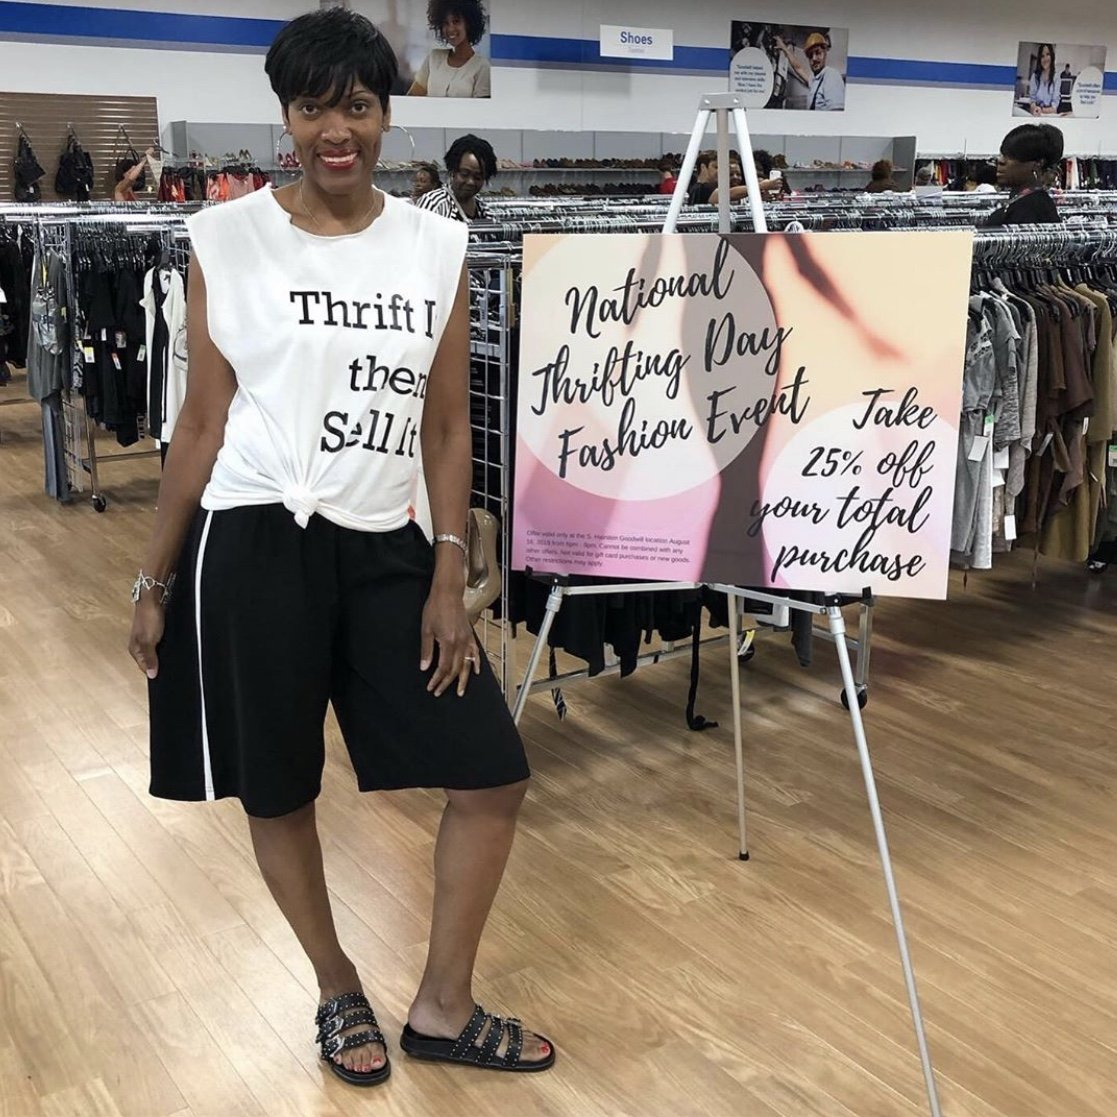 woman posing at Thrifting Atlanta event